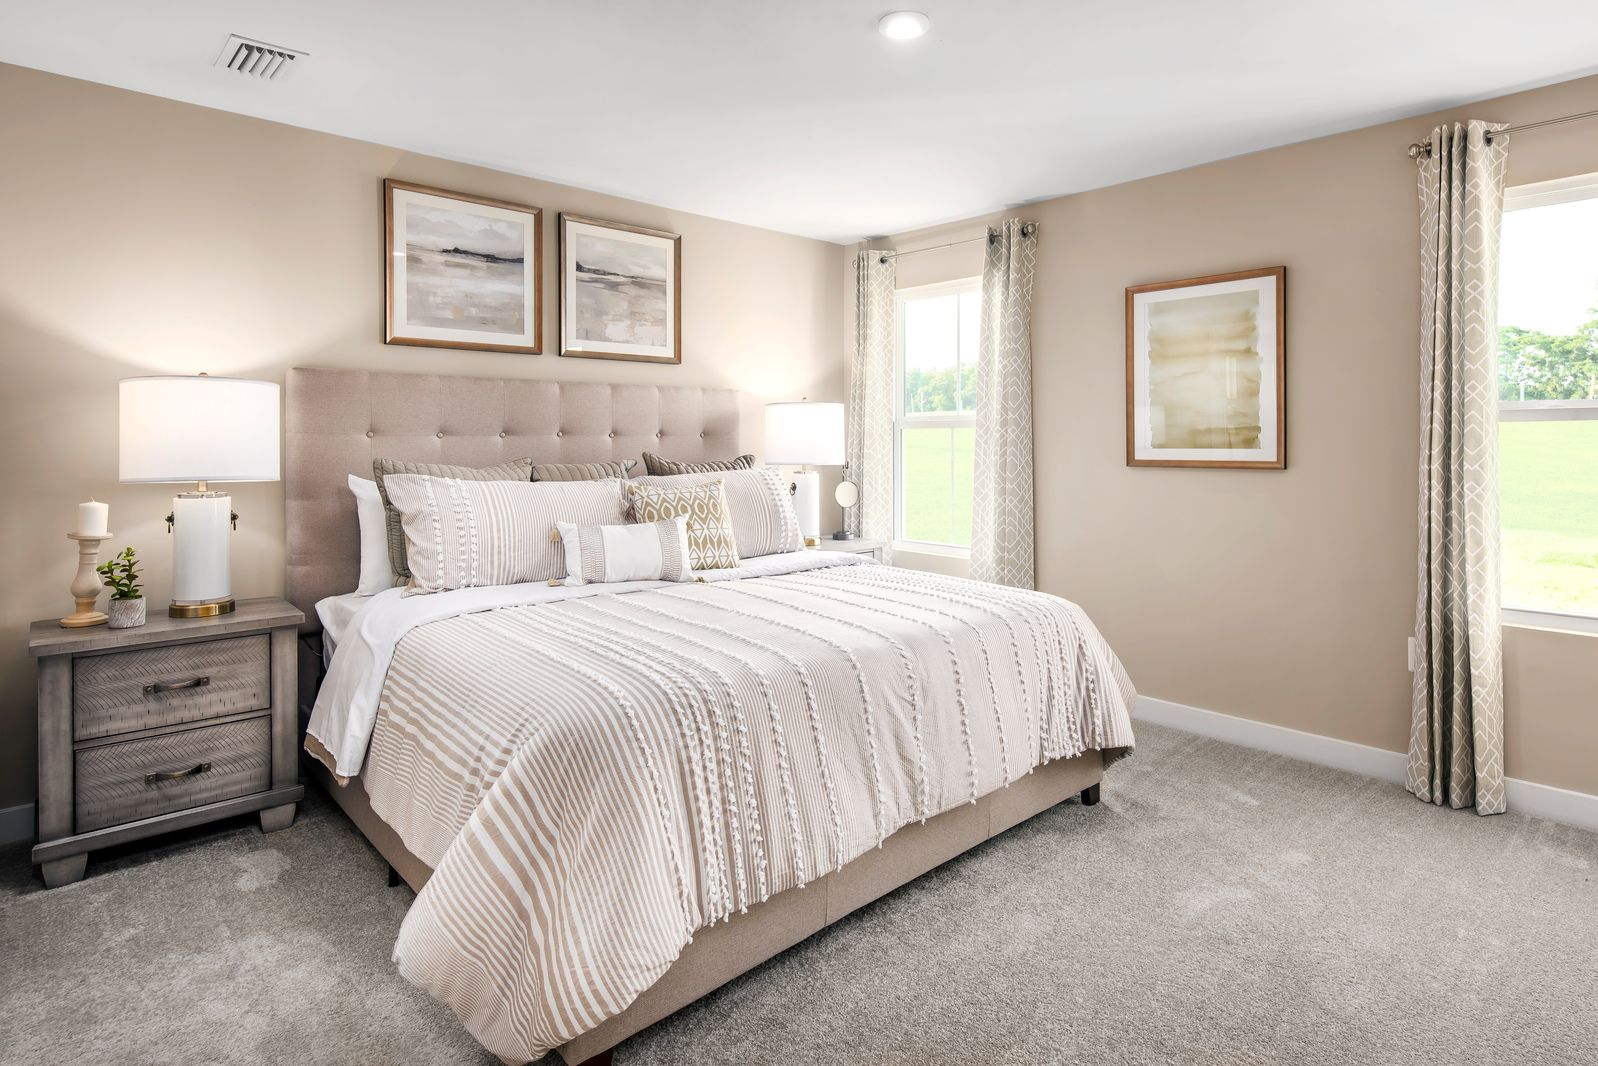 Bedroom featured in the Grand Cayman Ranch Slab - Basement Available By Ryan Homes in Chicago, IL